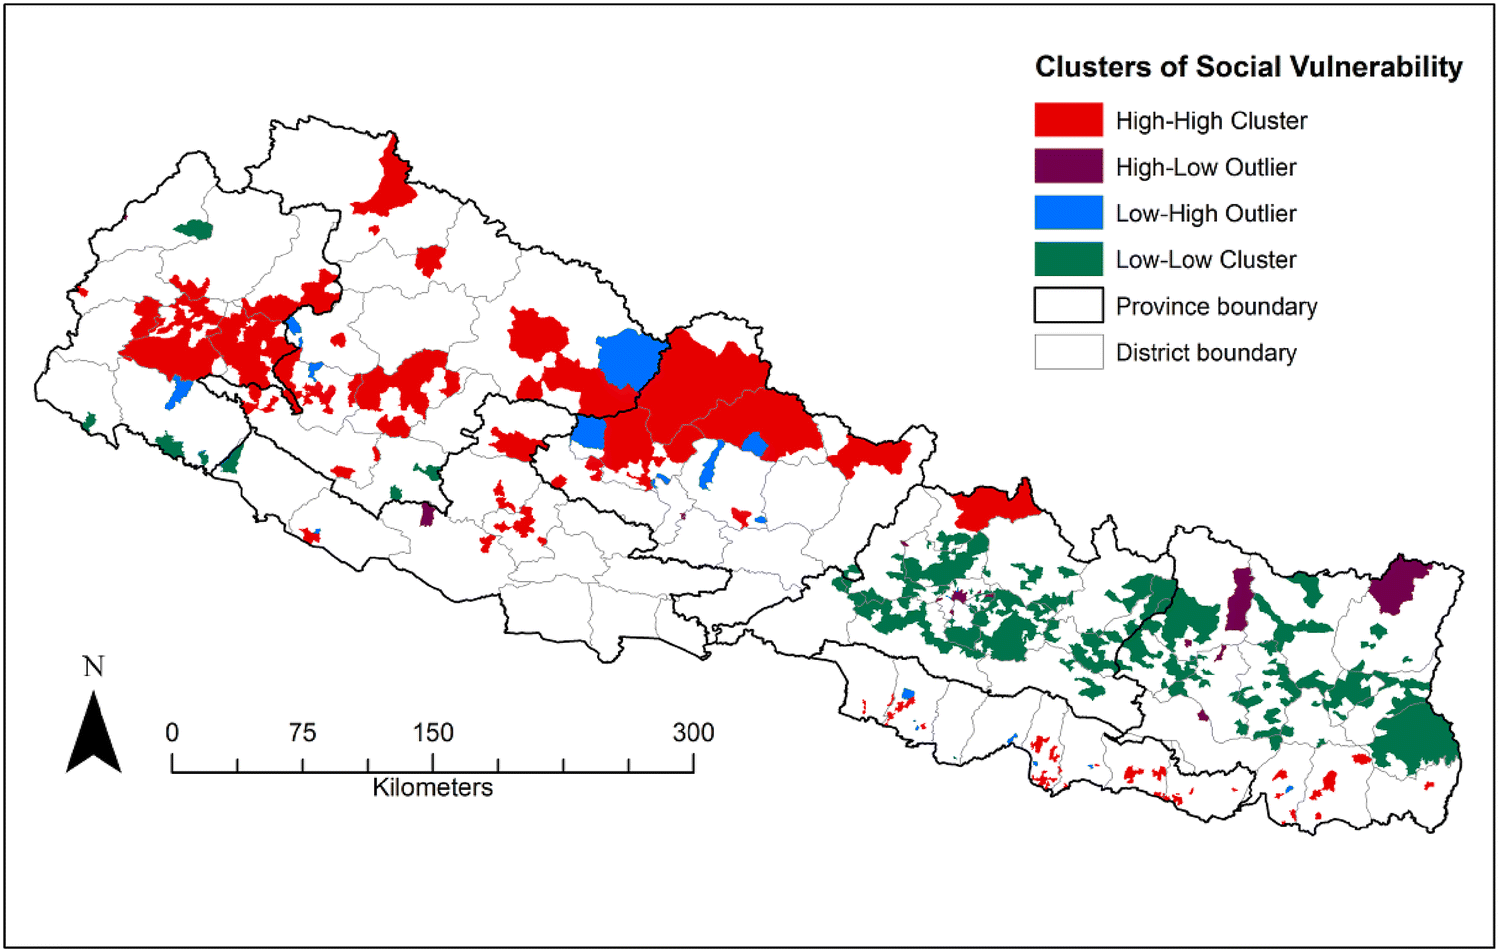 An ysis of Social Vulnerability to Natural Hazards in Nepal ... Kingdom Of Drr Map on map of game of thrones, map of dogs, map of the americas, map of dominion, map of sons of anarchy, map of states of america, map of nations, map of american idol, map of once upon a time, map of hunter x hunter, map of pangea, map of community, map of tokyo ghoul, map of domain, map of creation, map of greek, map of life, map of biology, map of hell on wheels, map of the 100,